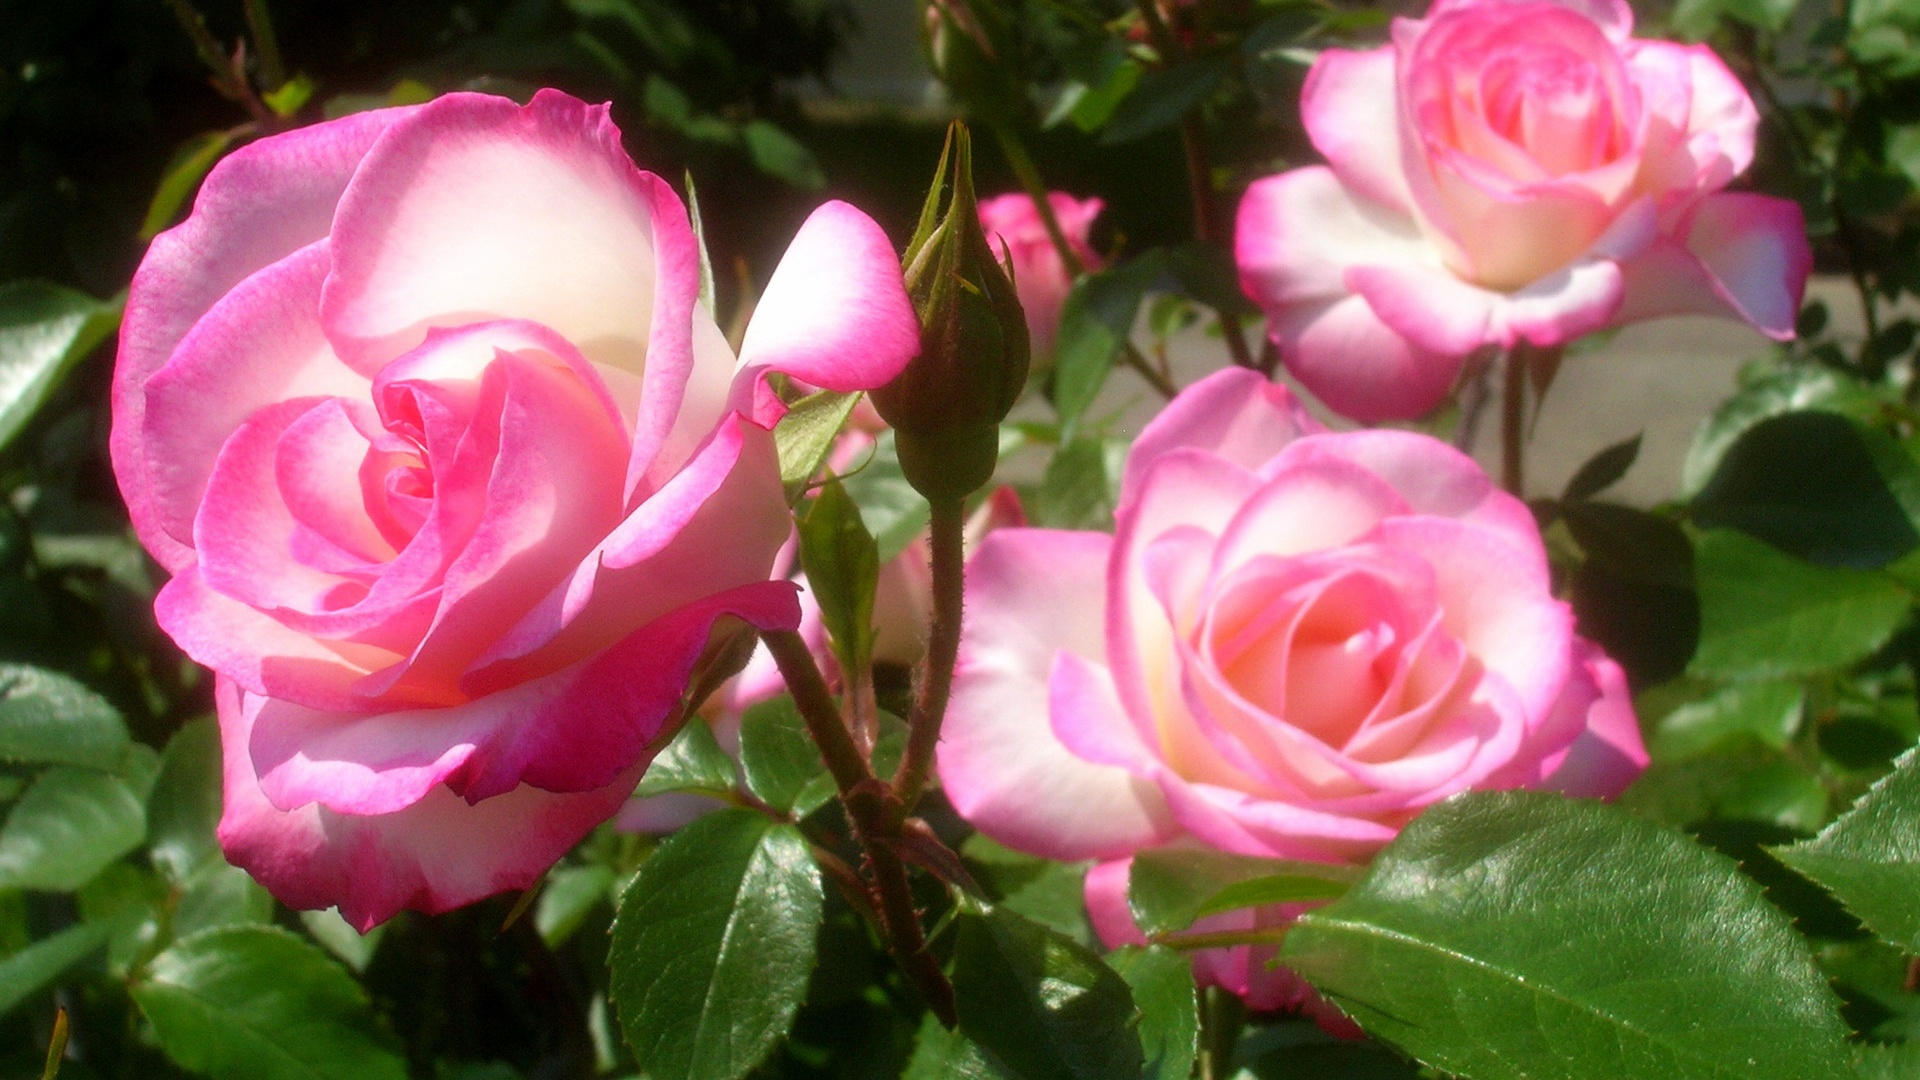 Bright pink roses wallpaper - 1920x1080